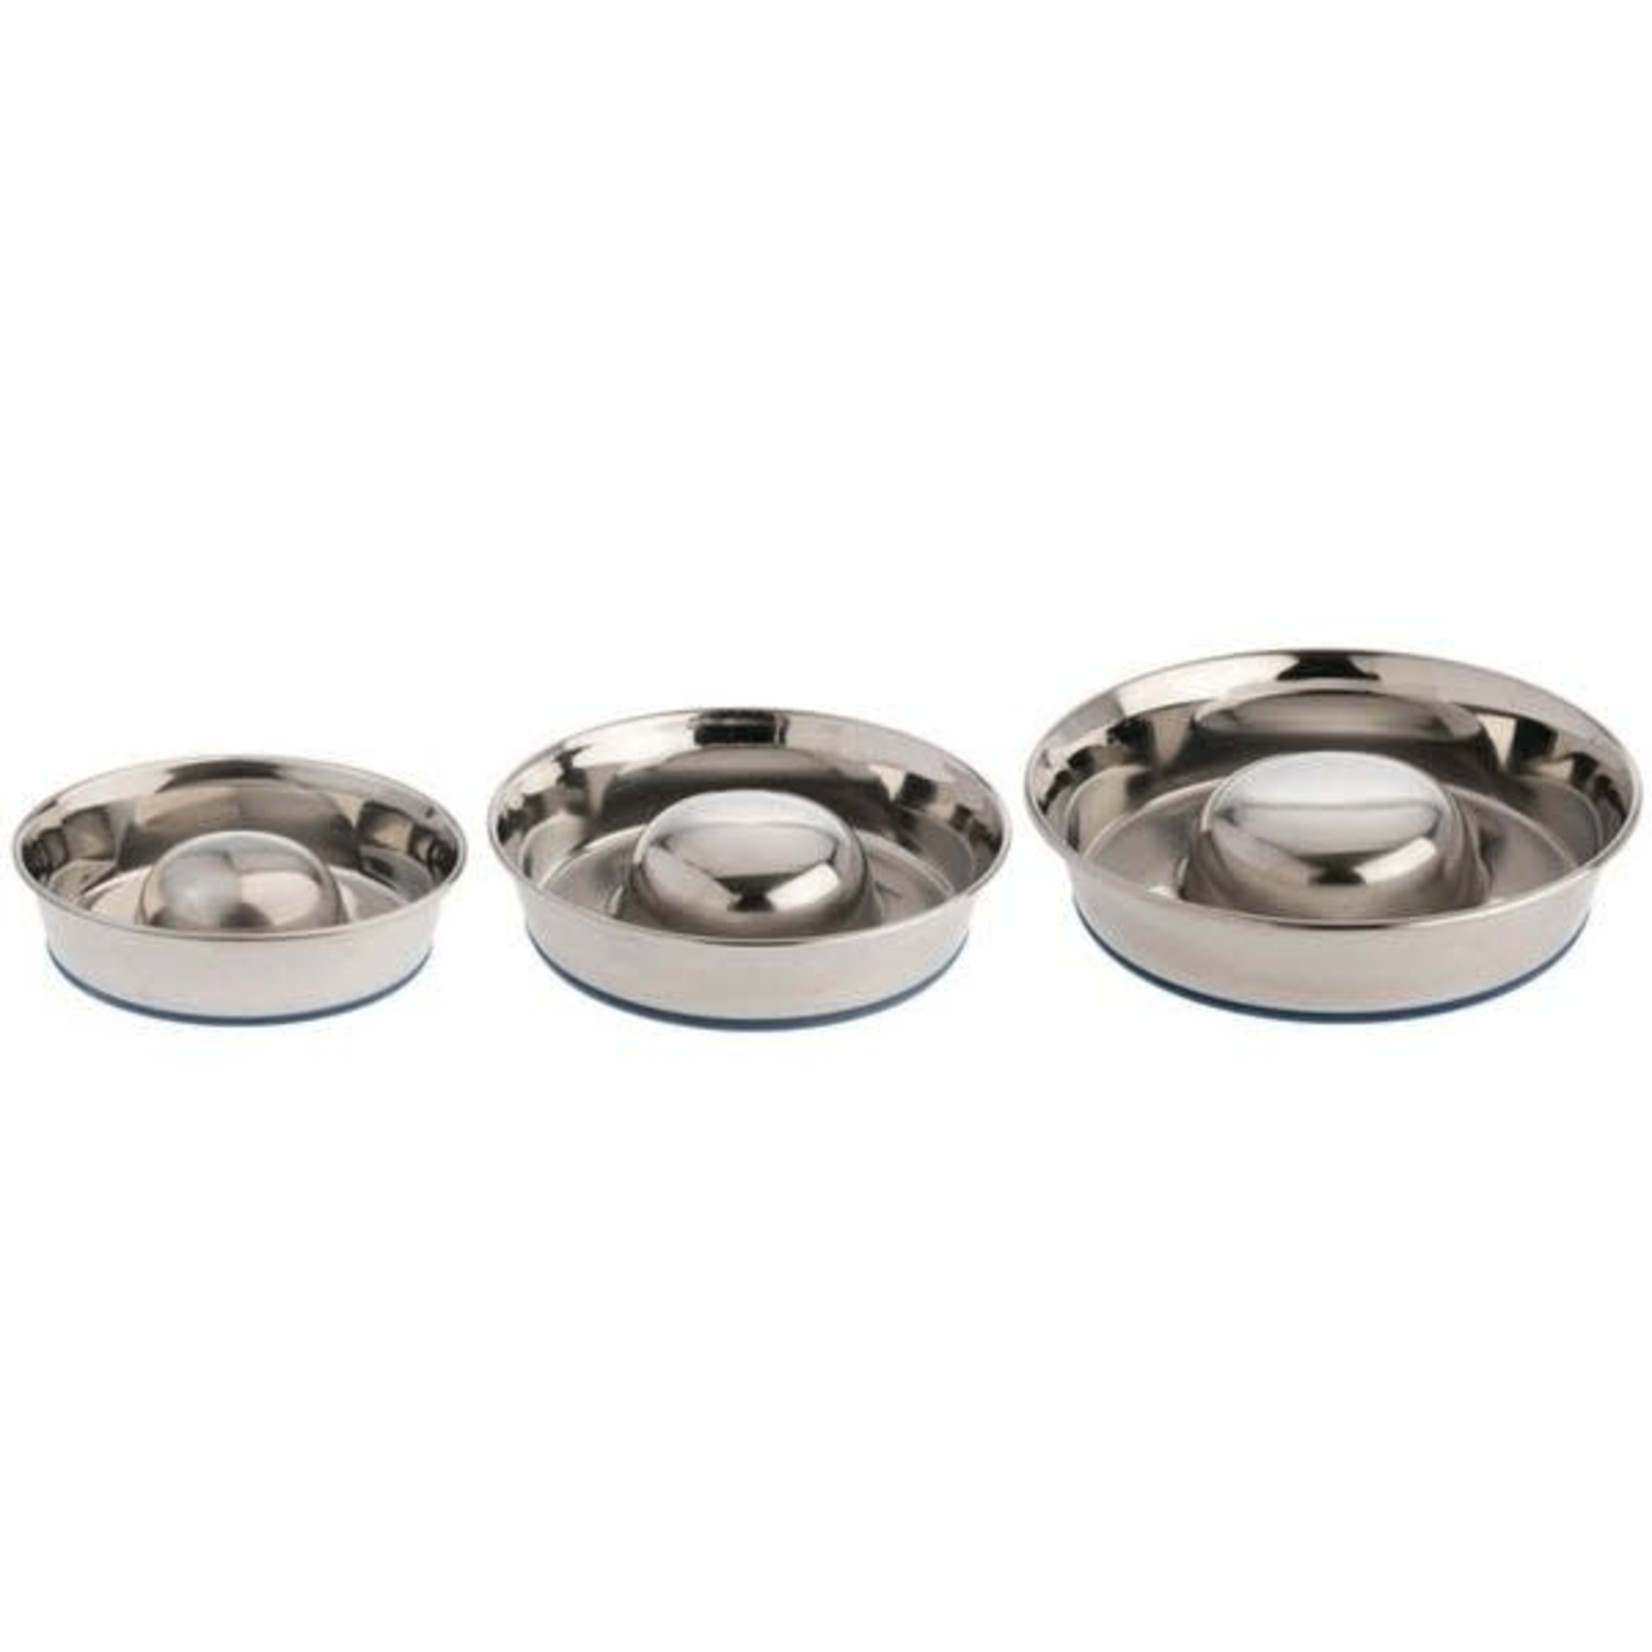 Our Pets Company Durapet Stainless Steel Bowl Slow Feed Large